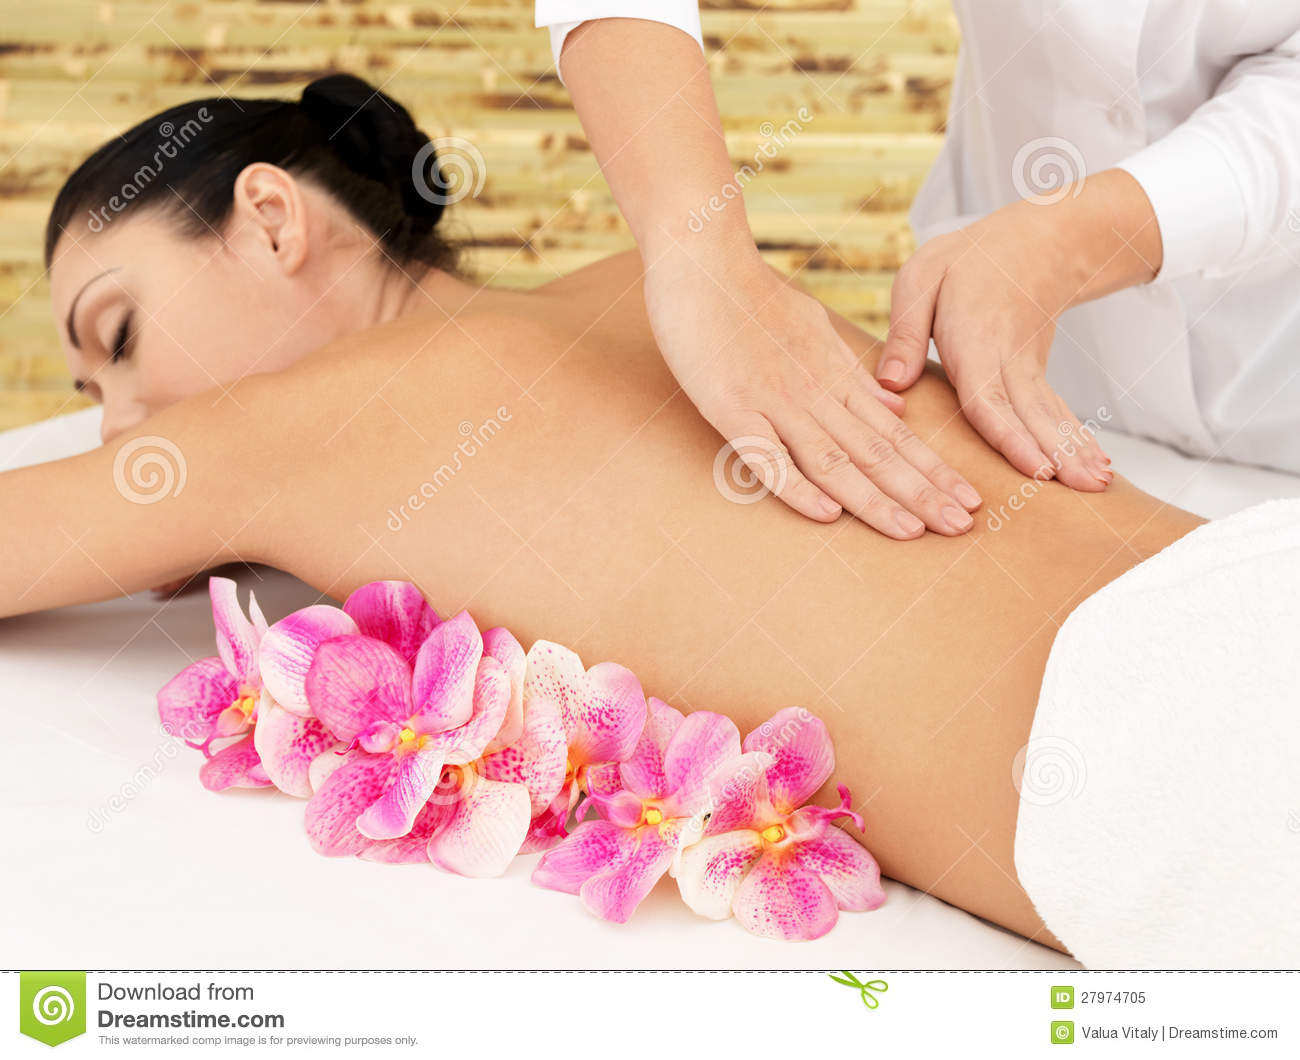 Salon Massage Body Body Woman On Healthy Massage Of Body In Beauty Salon Stock Image